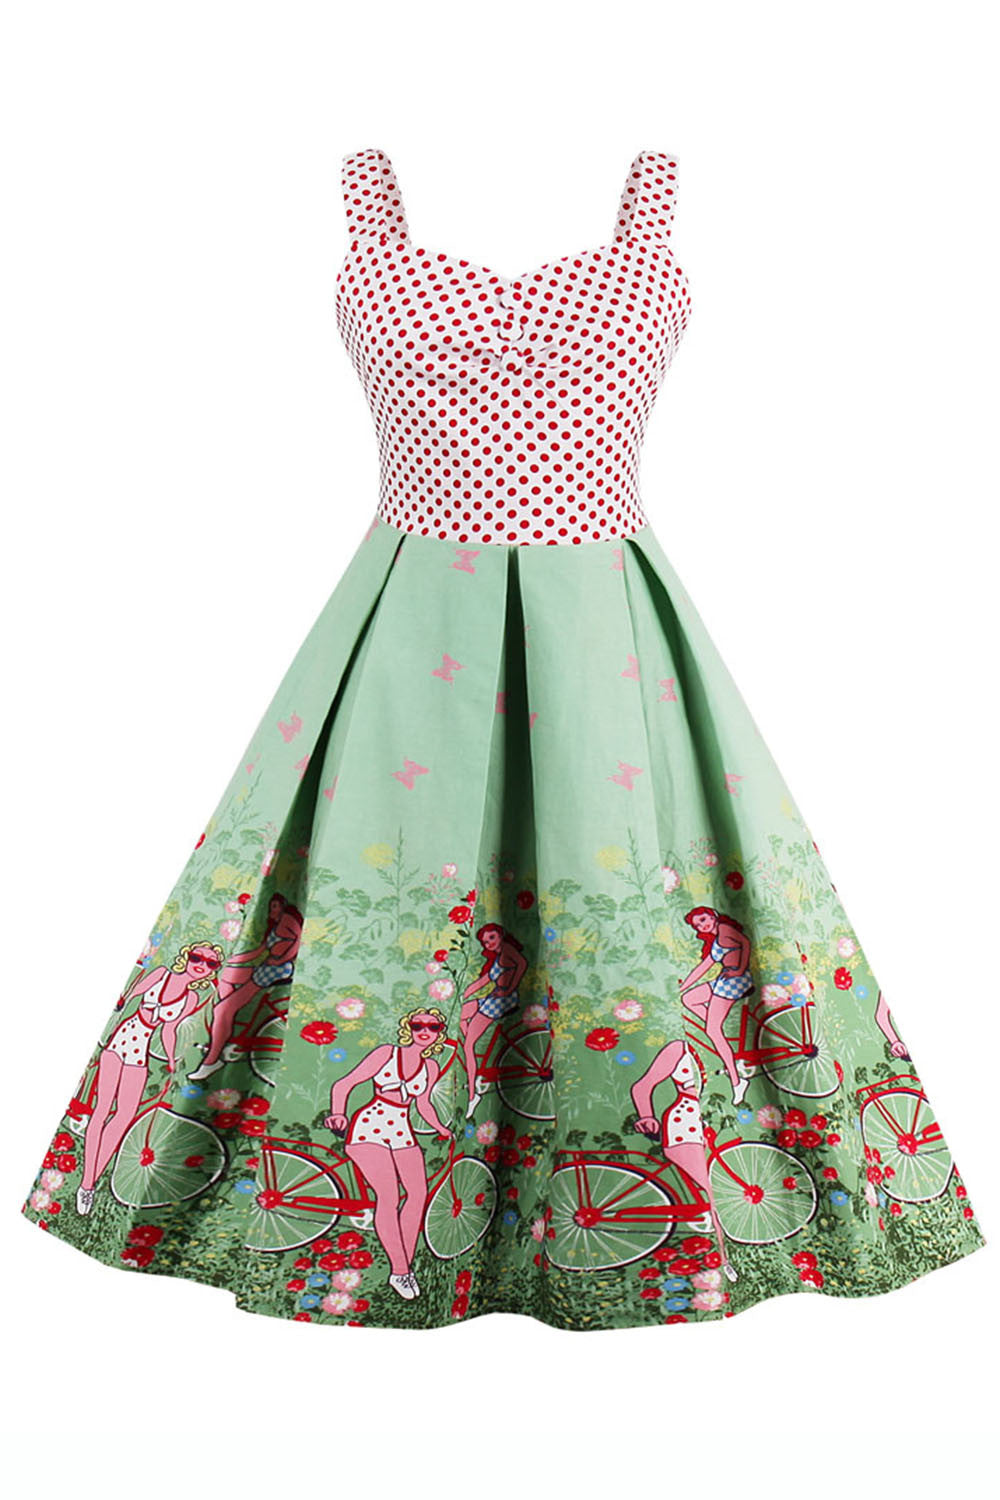 Chicloth Deserve the Best A-line light green Vintage Dress - Chicloth